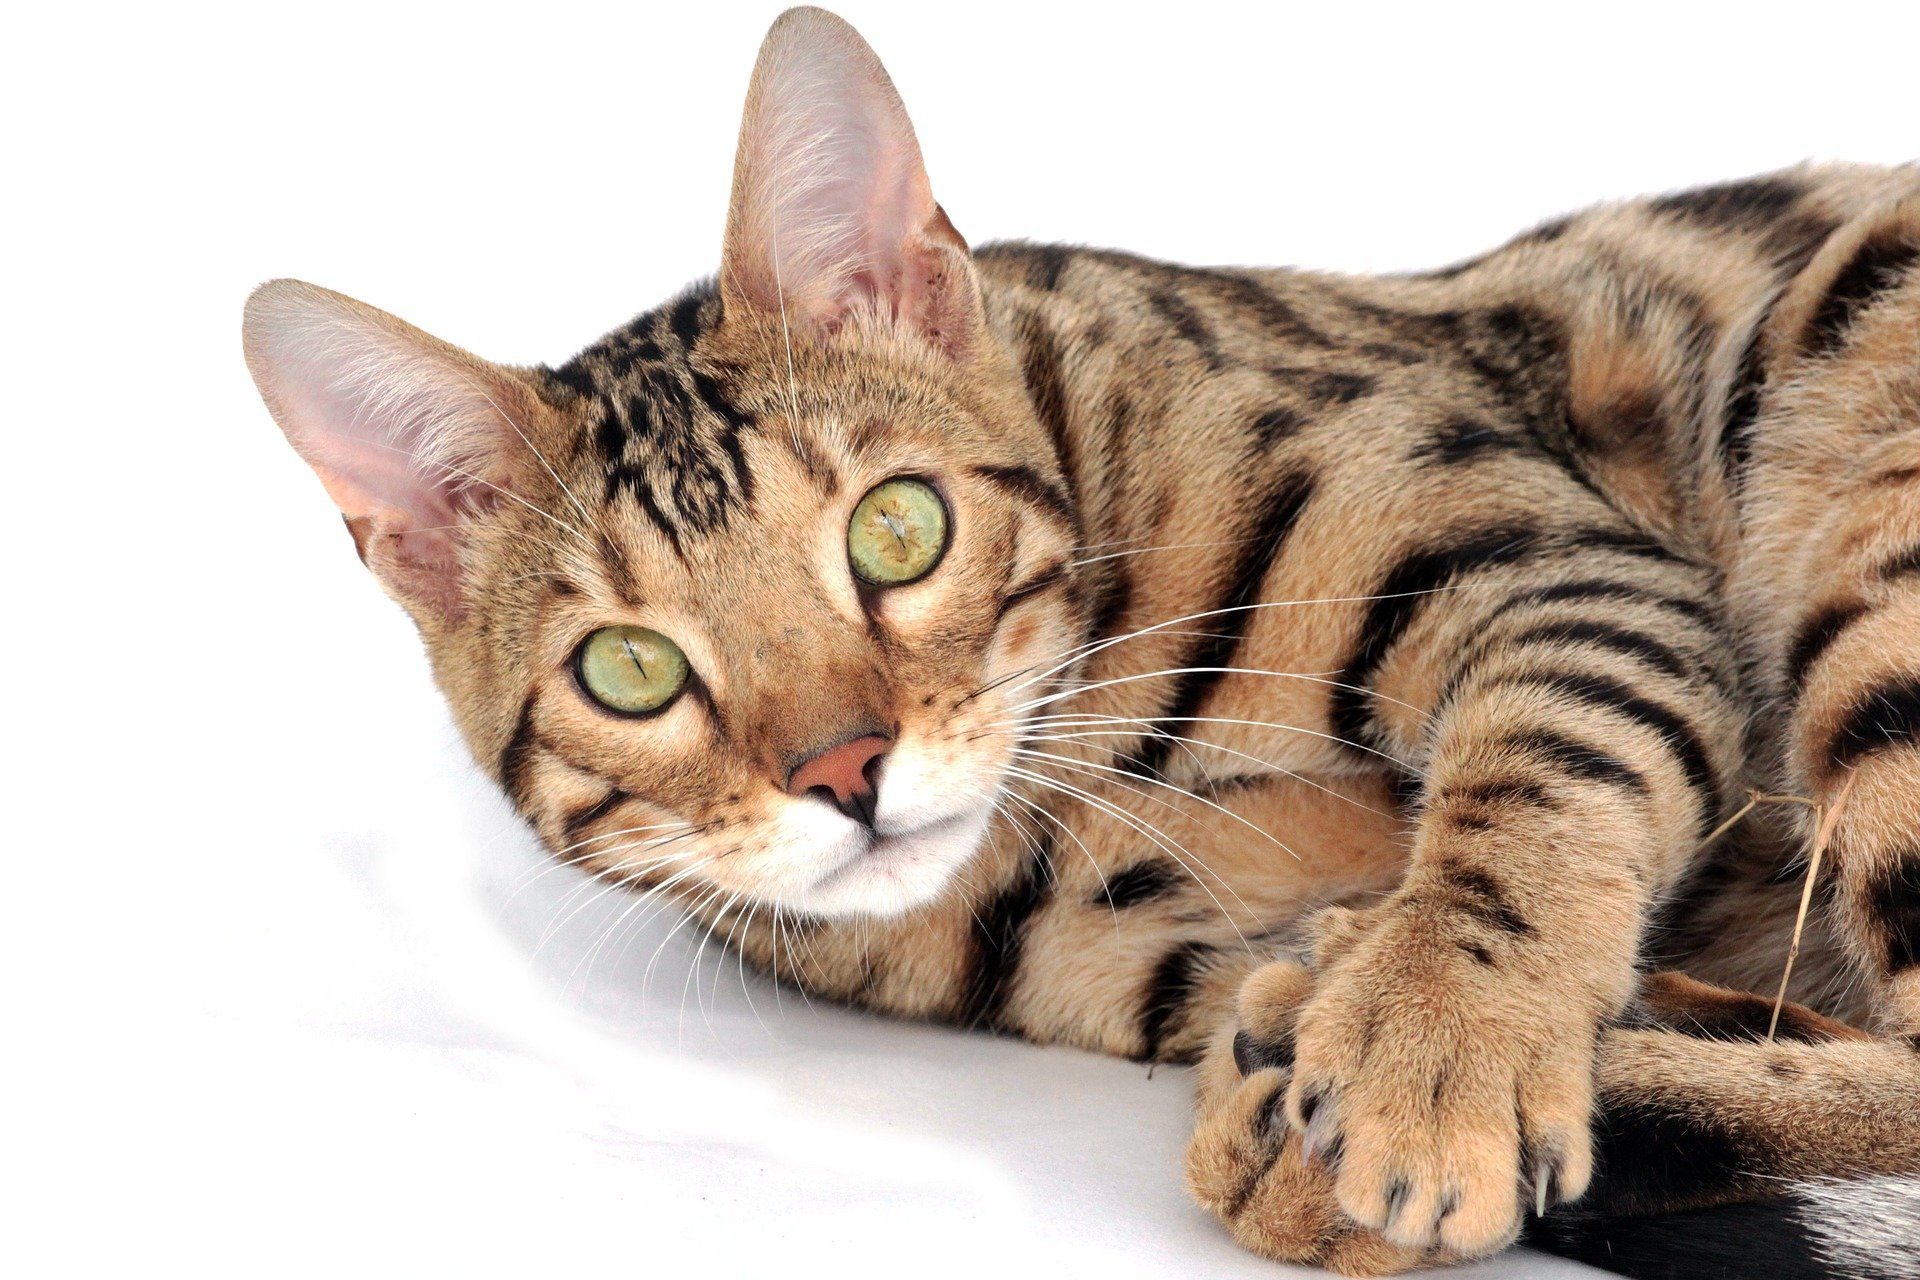 A Bengal Cats Personality Cat breeds: The...